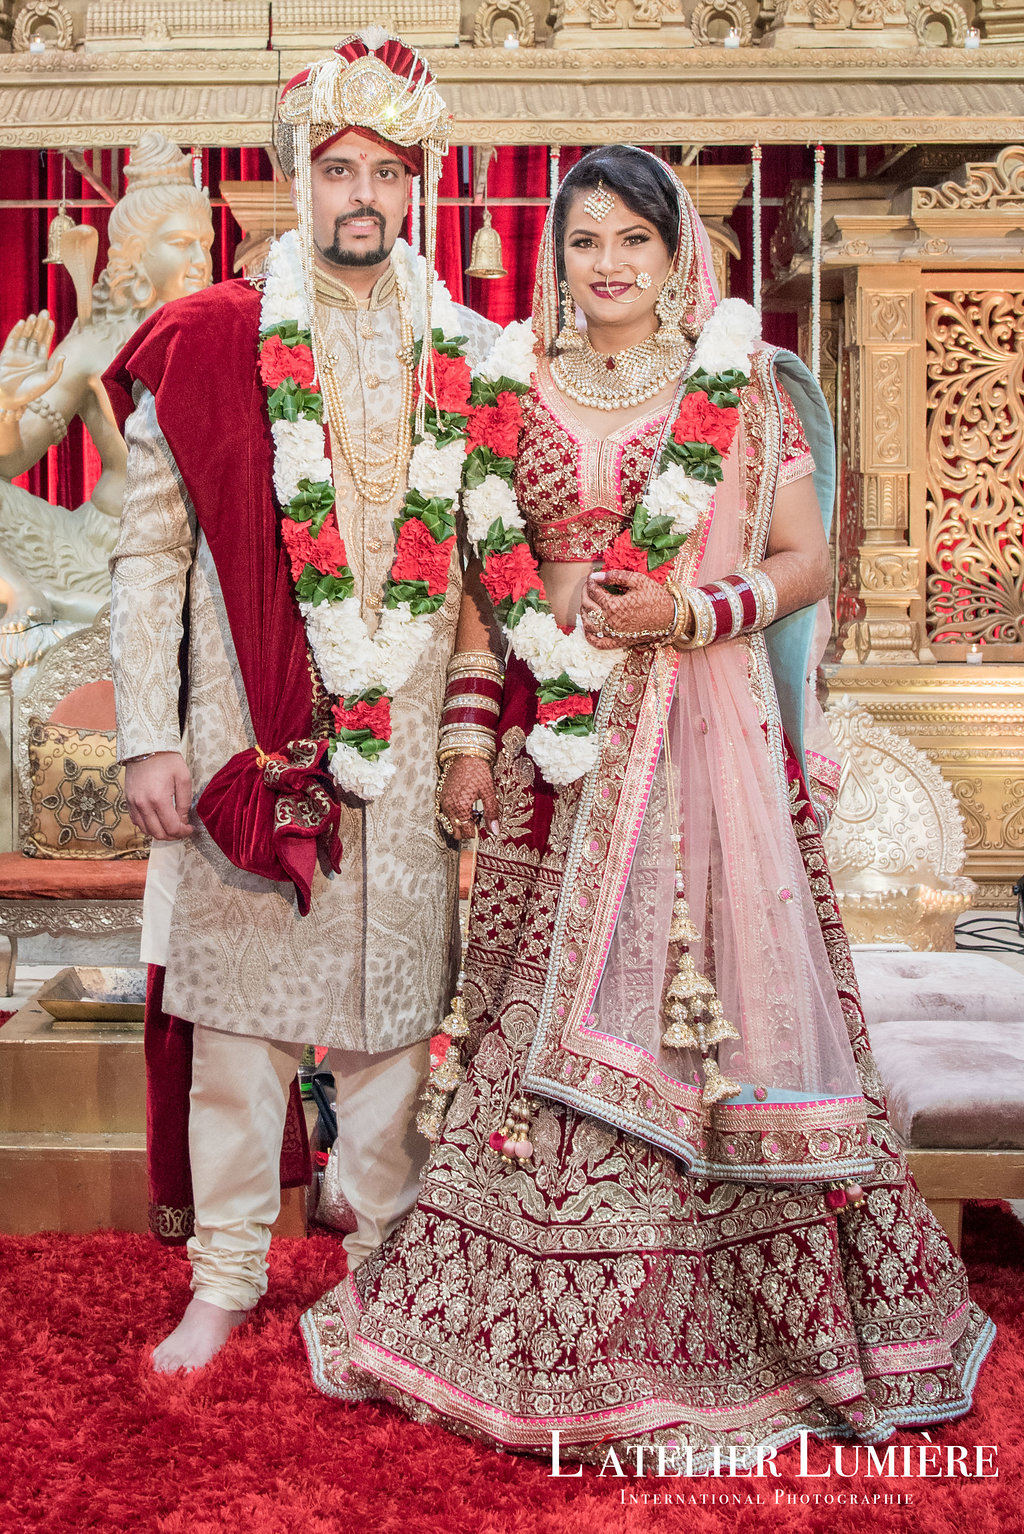 467-WED-Manisha&Rajiv-EX-LR-WM-LL7_5644